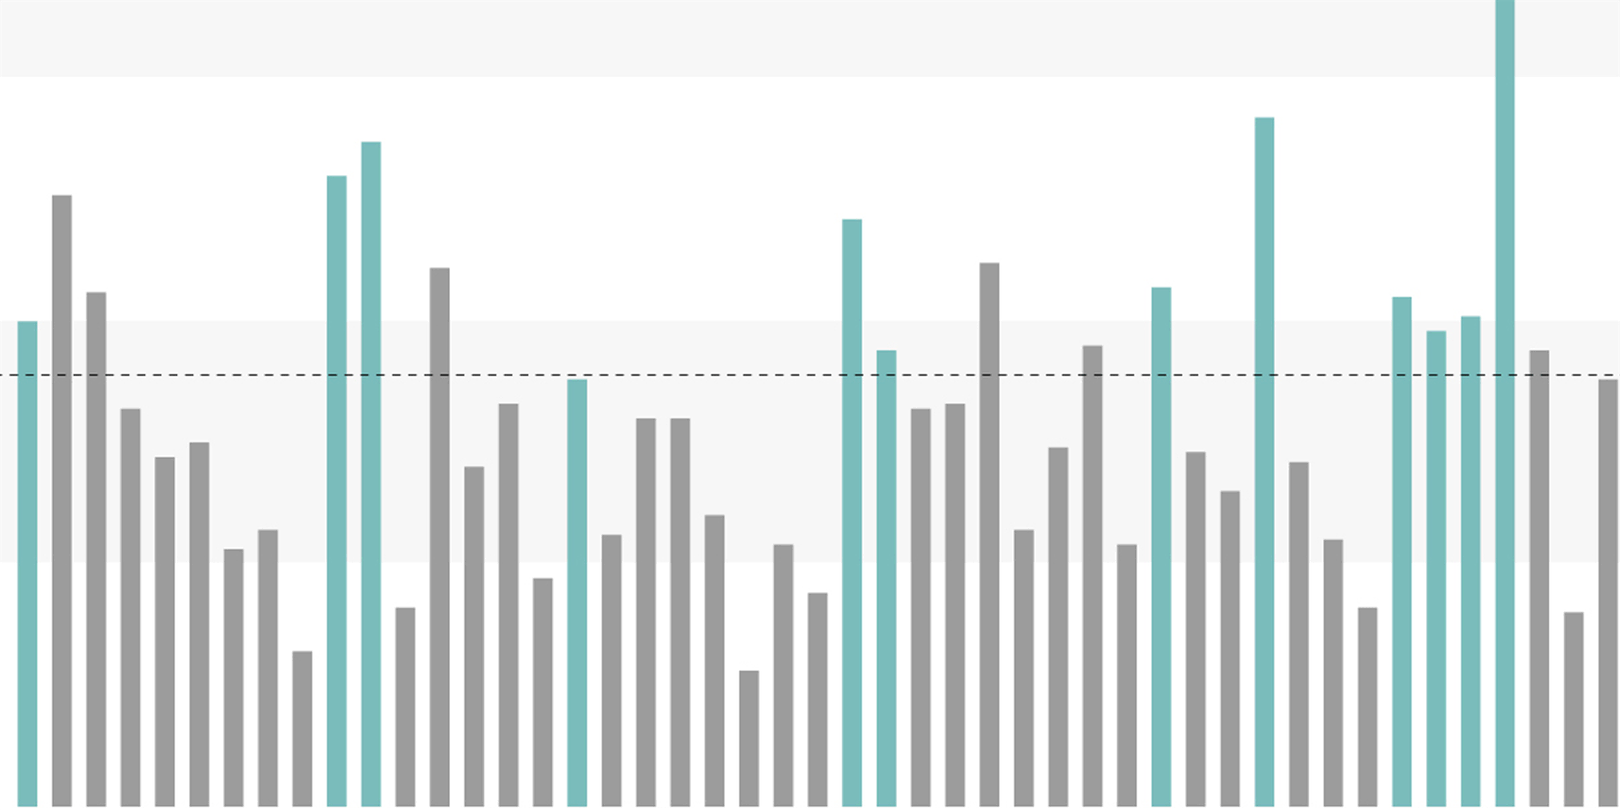 Graphic of a bar chart